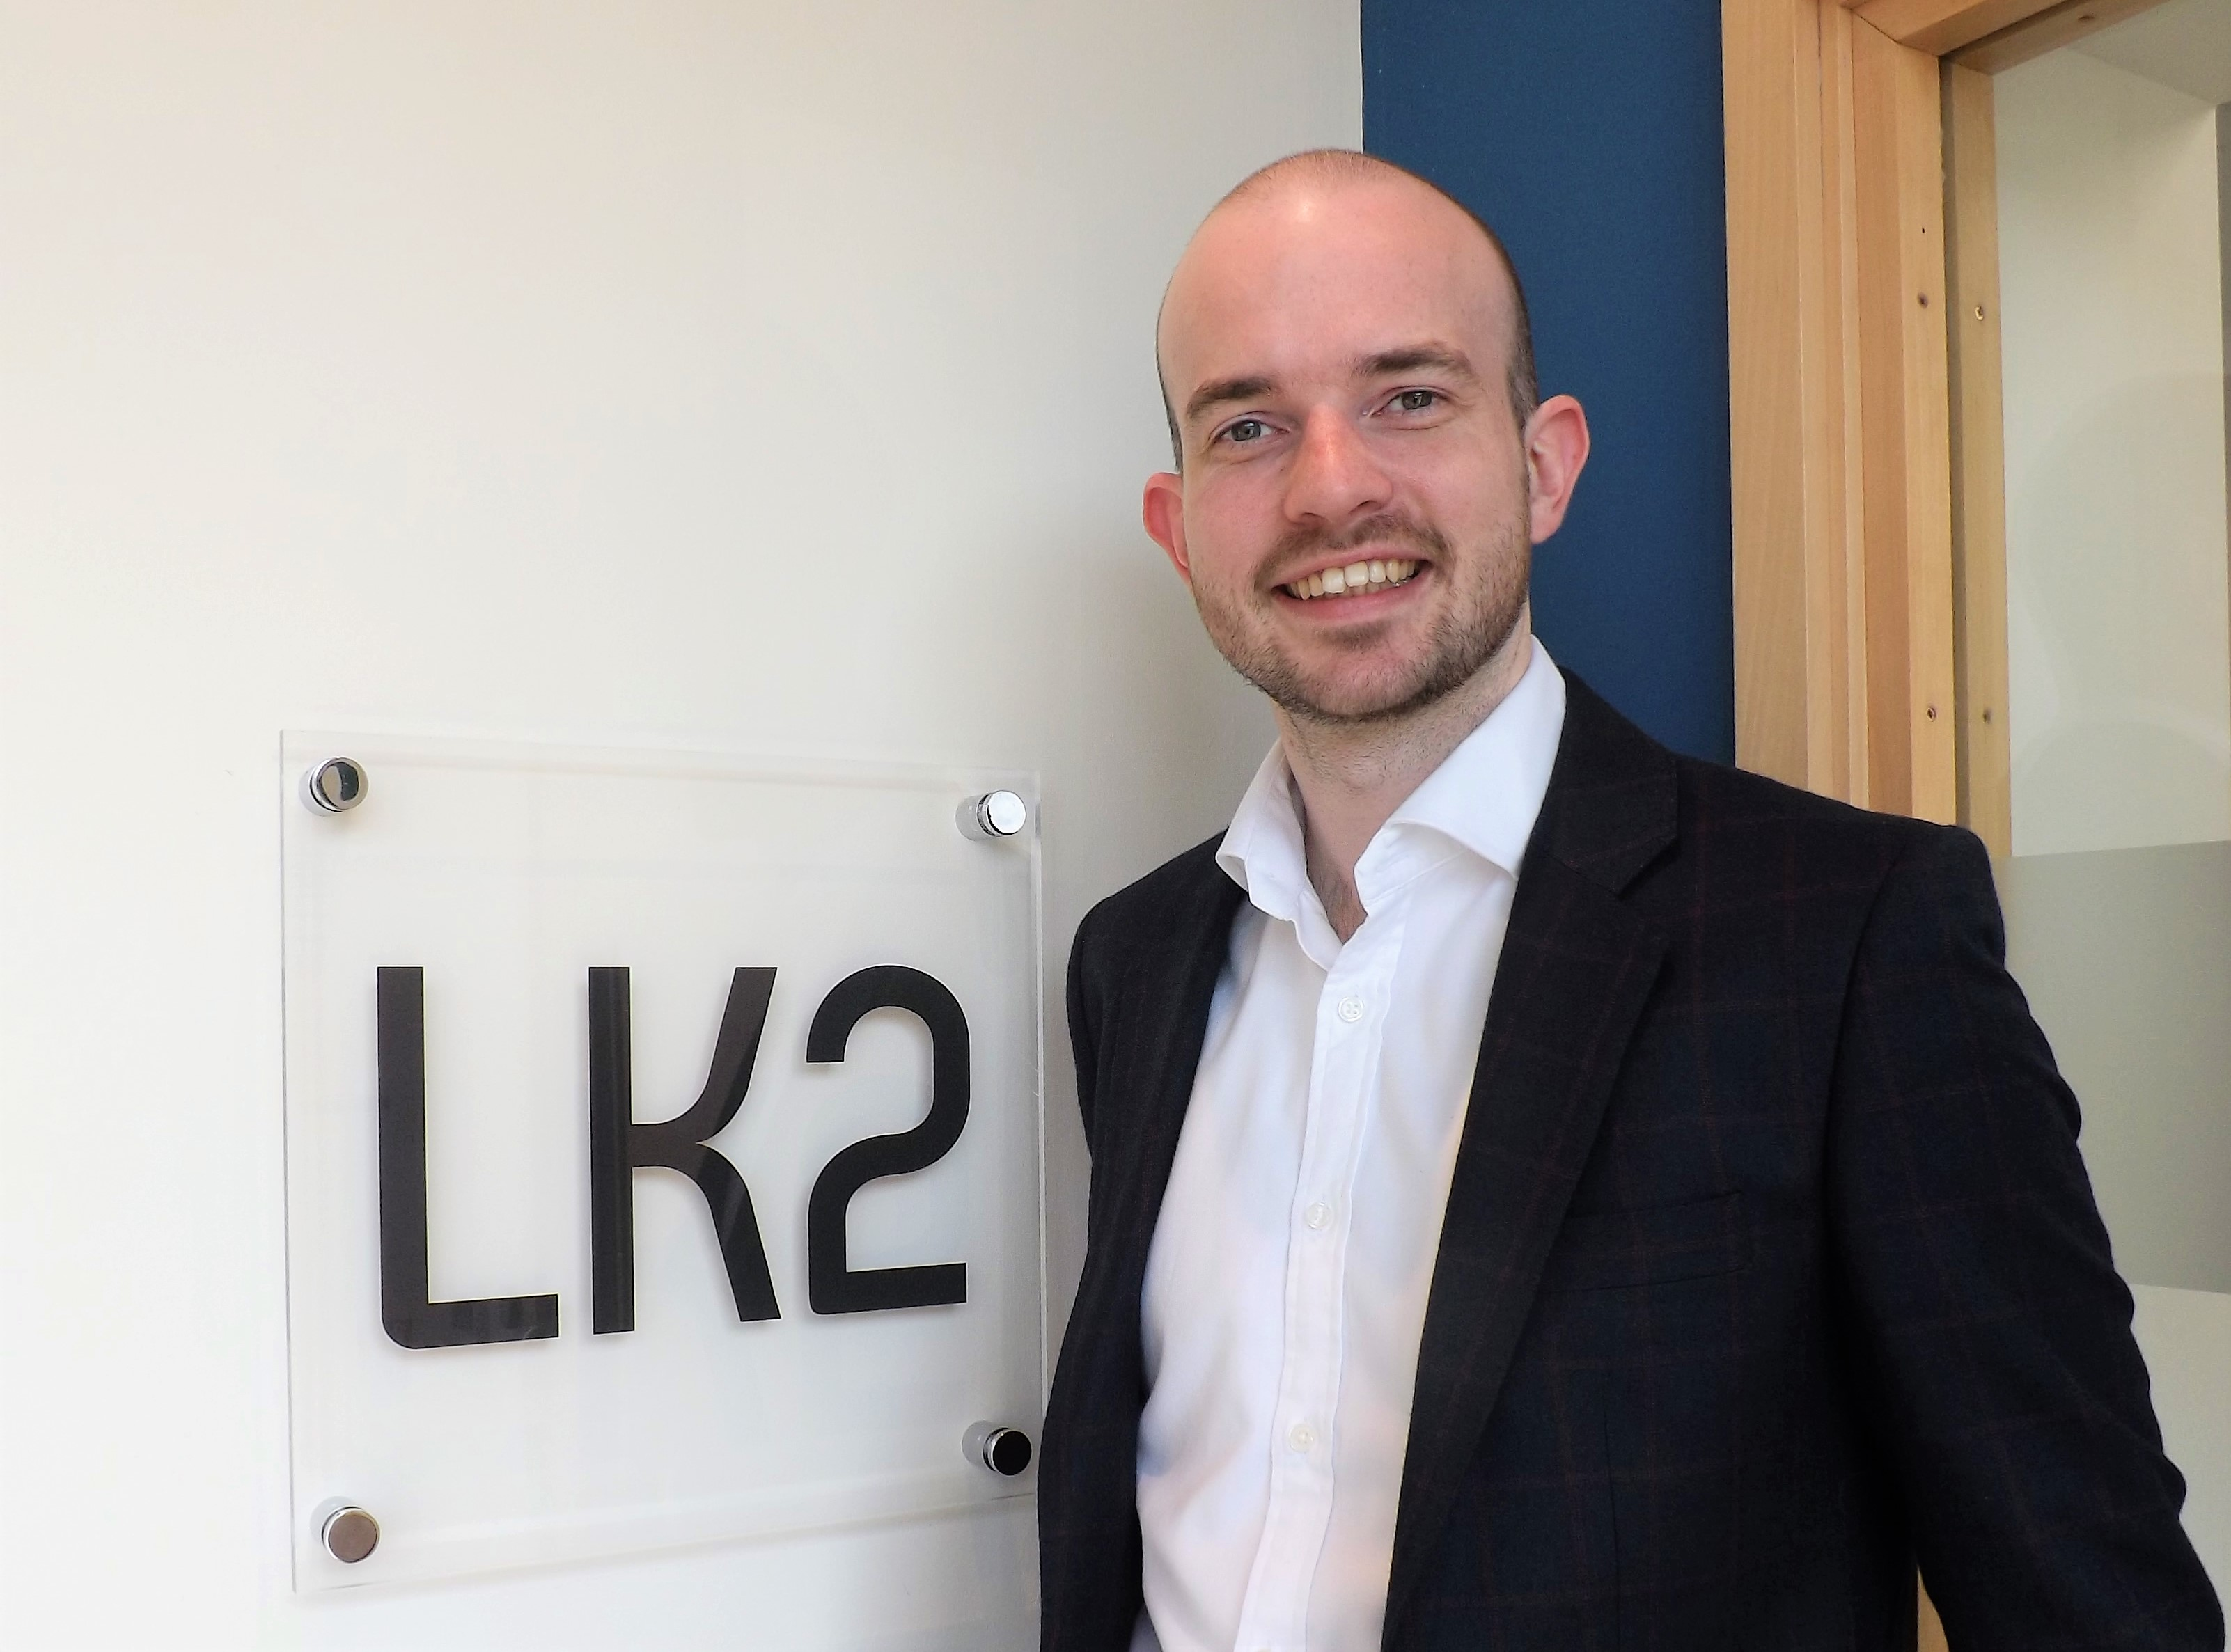 LK2 bolsters marketing team with new hire